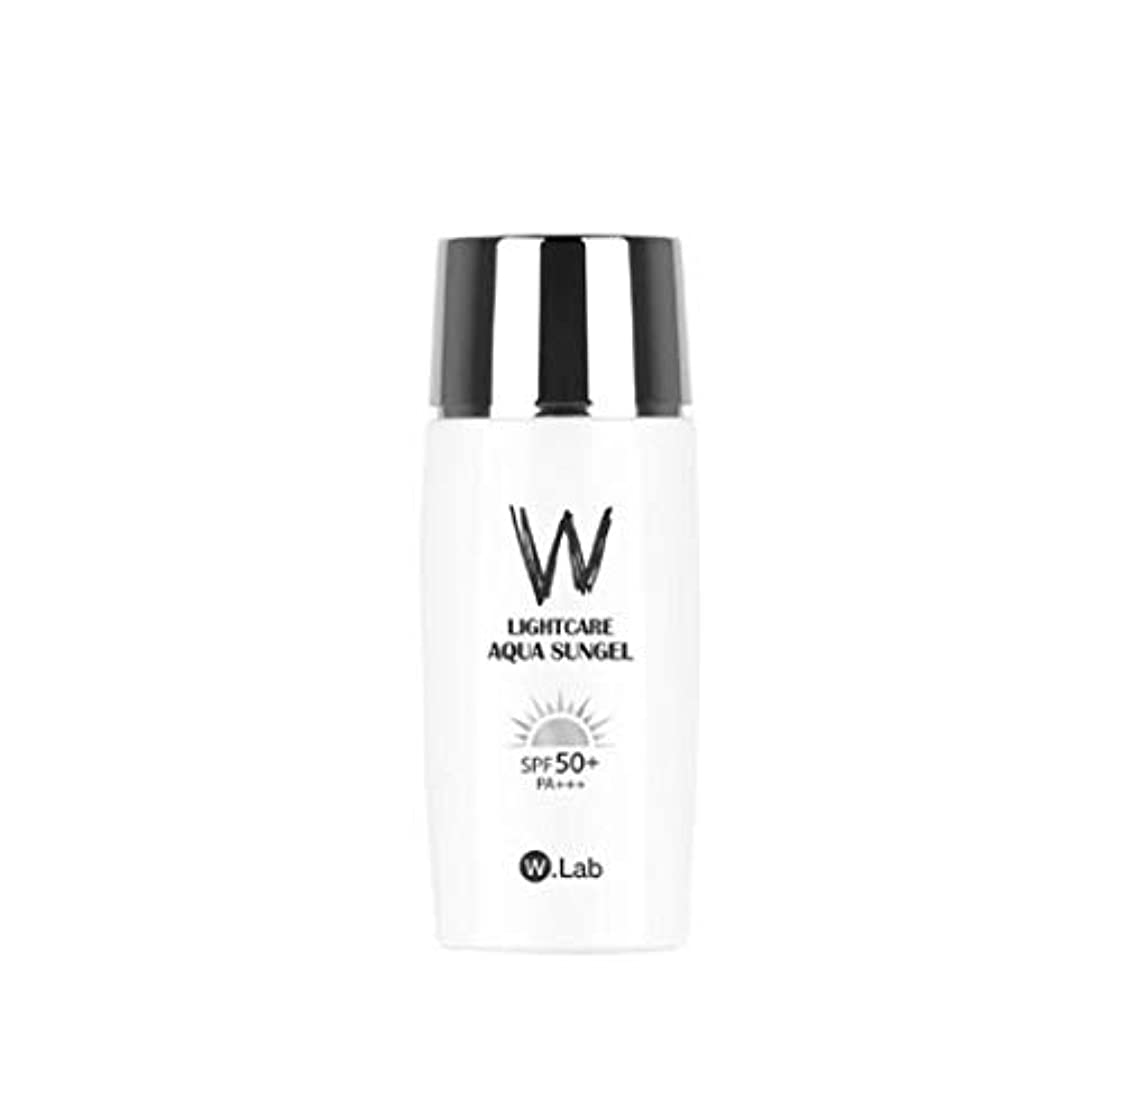 目覚める原始的な不条理W.Lab Light Care Aqua Sun Gel Sunscreen SPF PA+++ 50+ Daily Care Solution SPF 50 PA+++ Face Body Water Resistant UV Protection Sun Screen Cream Hydrated Isolation Cream, 50ML